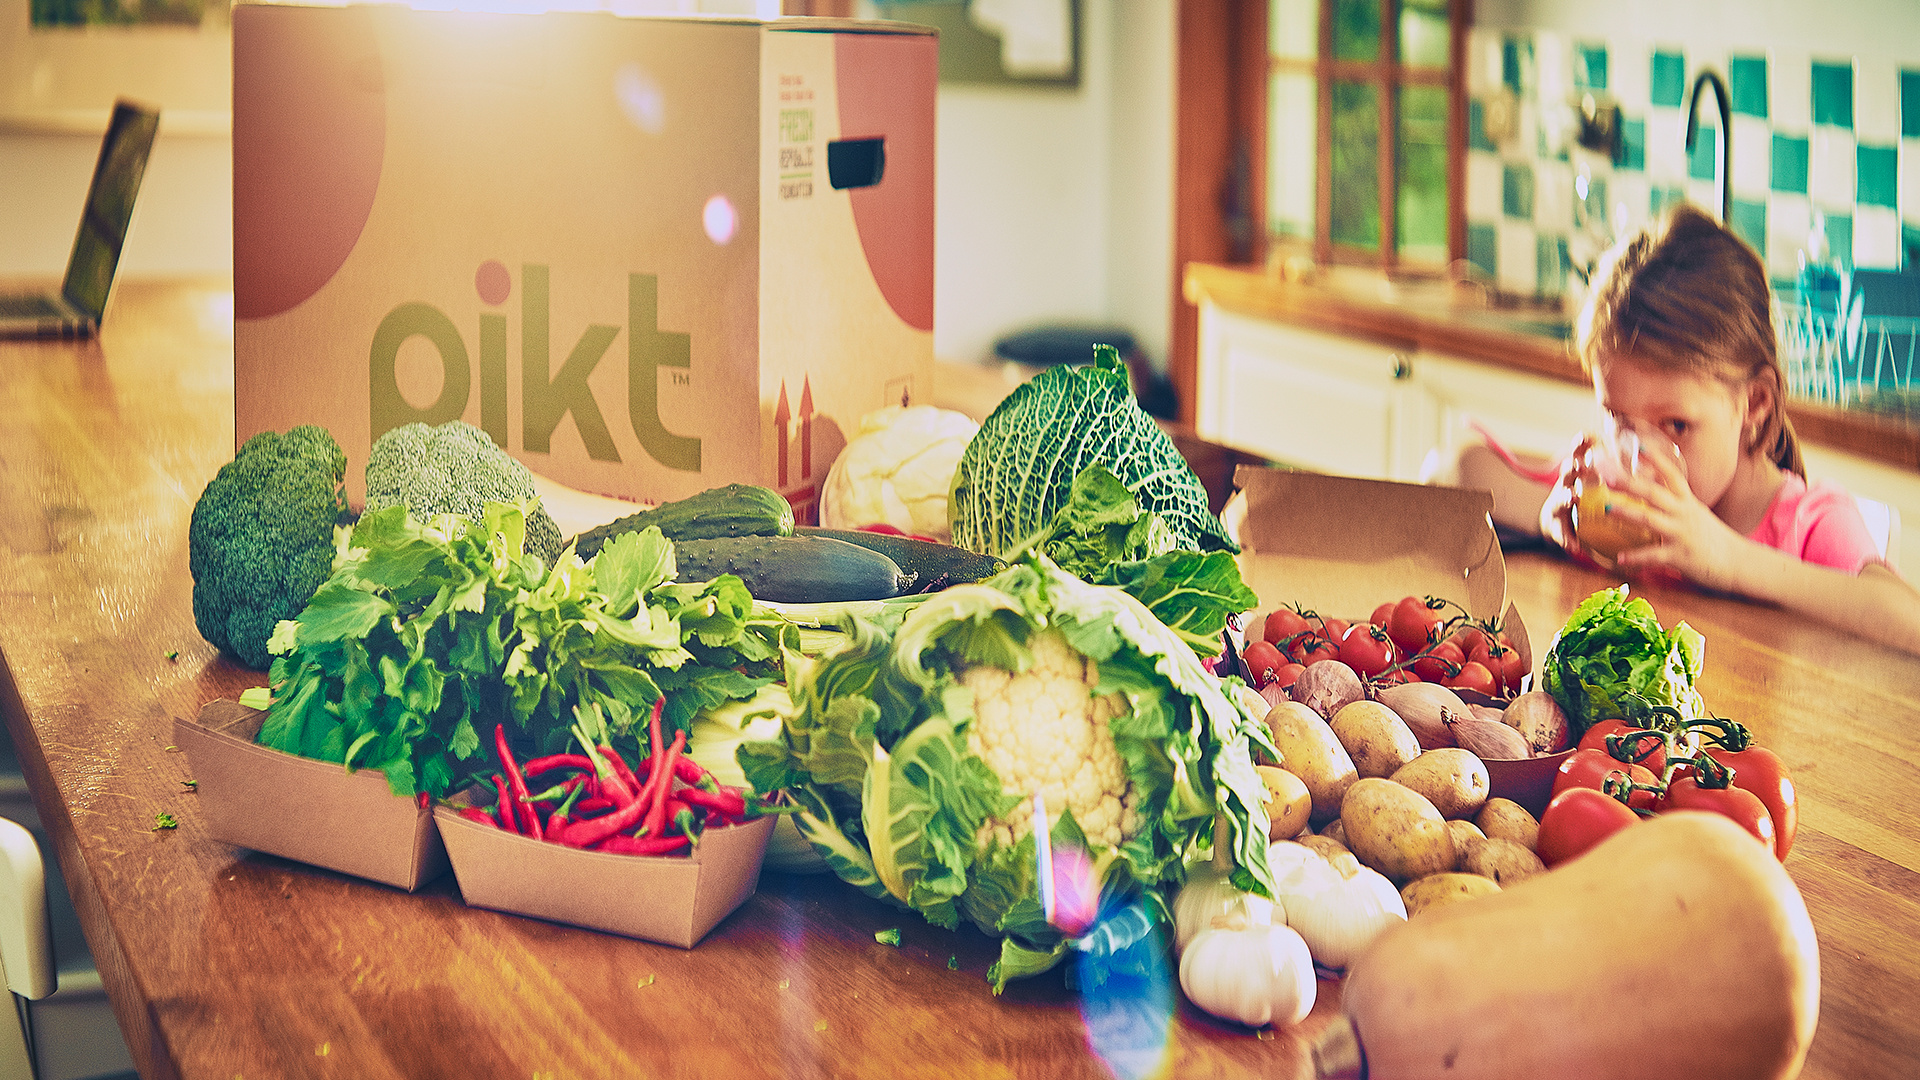 Get 10% off your next Pikt delivery box